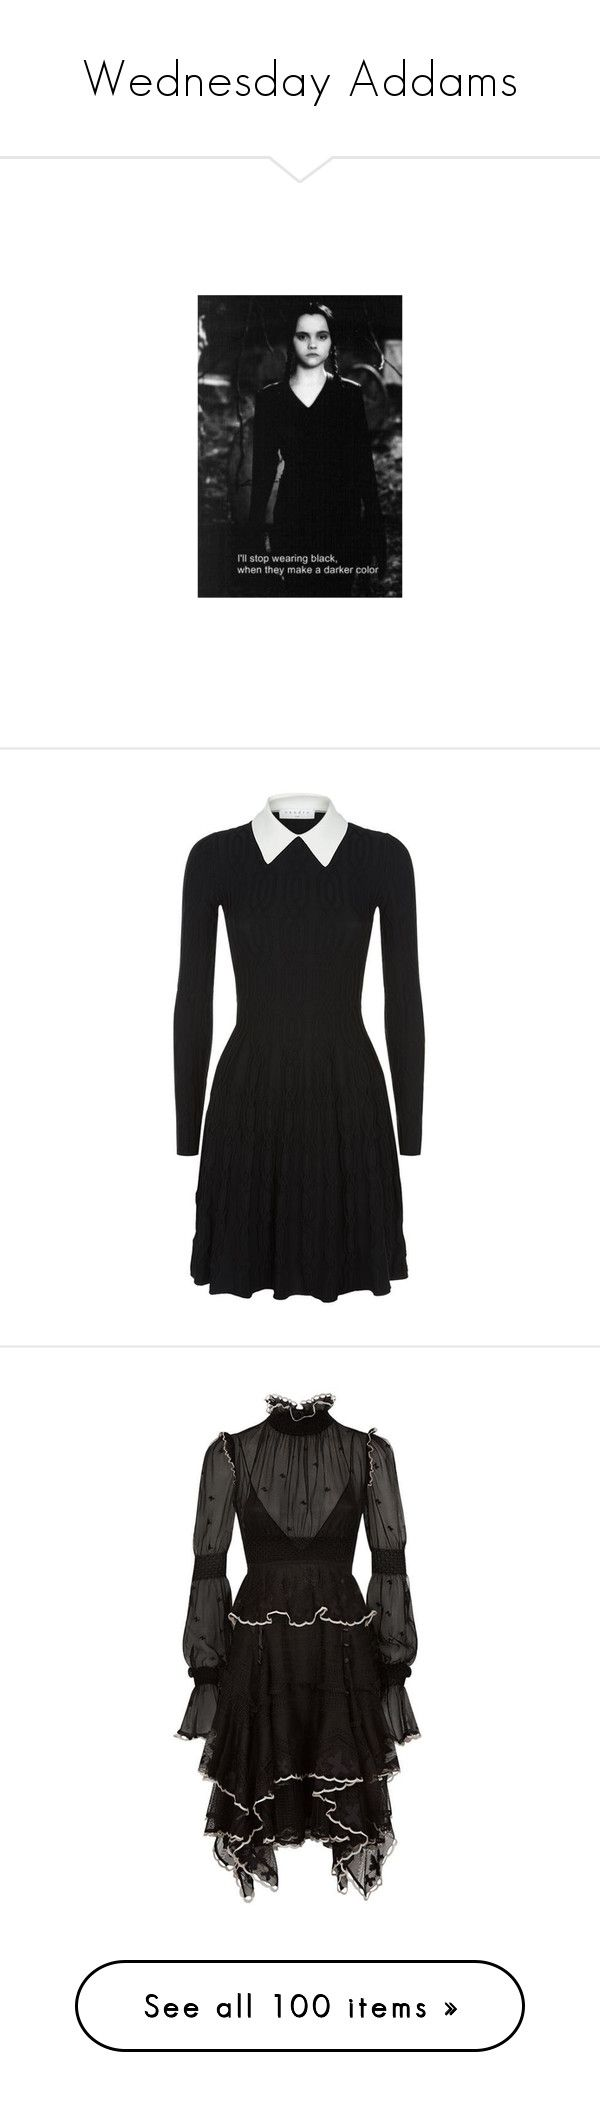 """Wednesday Addams"" by lj-case ❤ liked on Polyvore featuring dresses, textured ... 1"